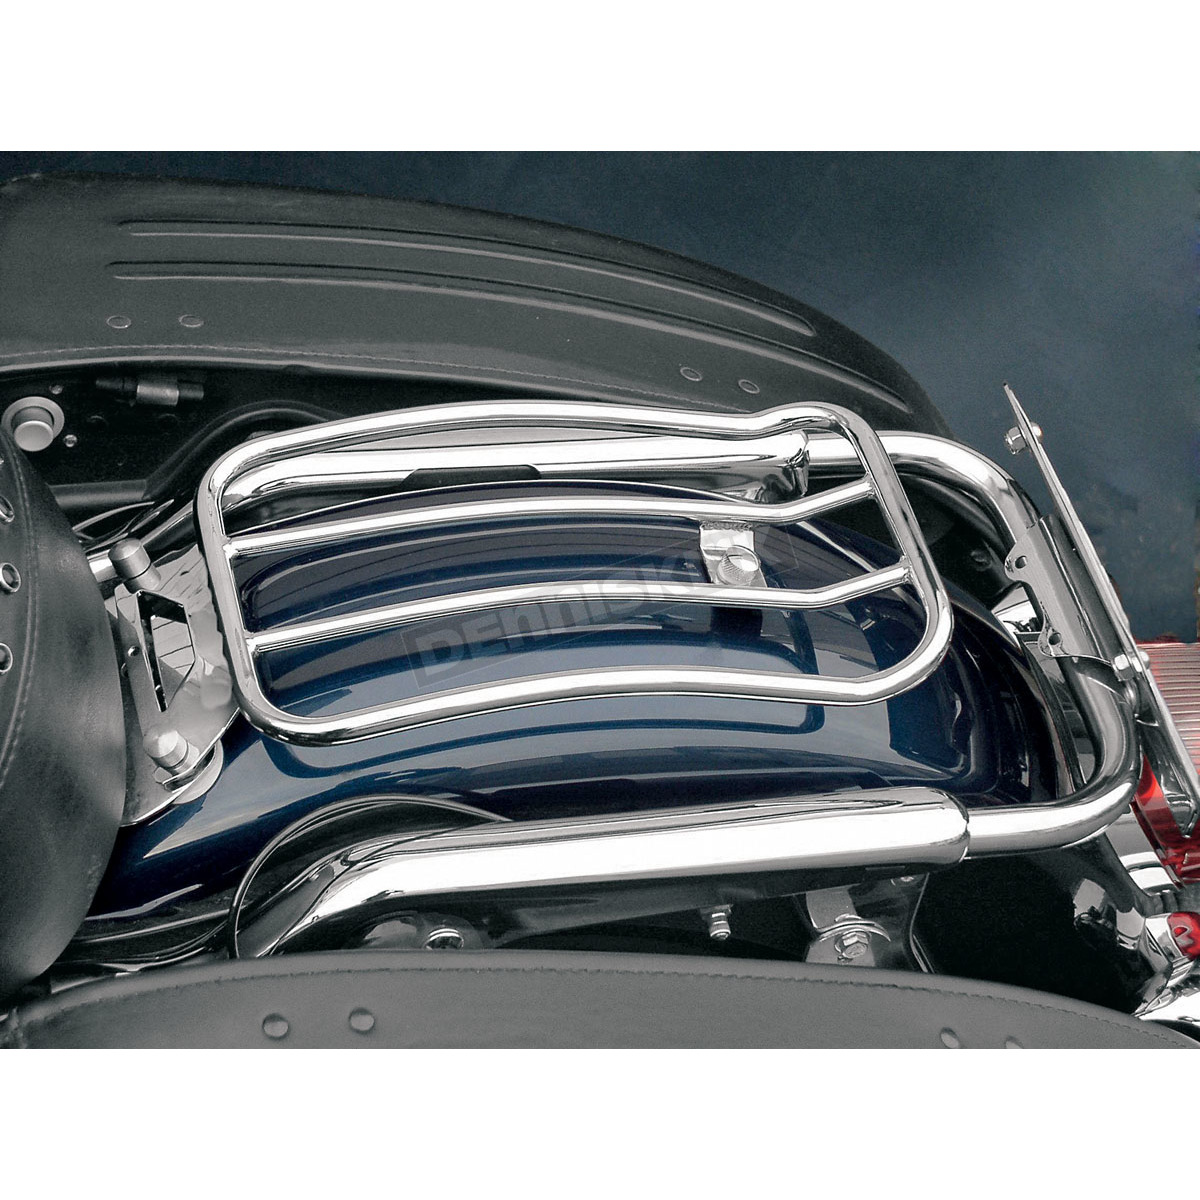 Steel chrome Solo Seat Luggage Rear Fender Rack Fits For Harley Road King FLHR Electra Glide FLHTC